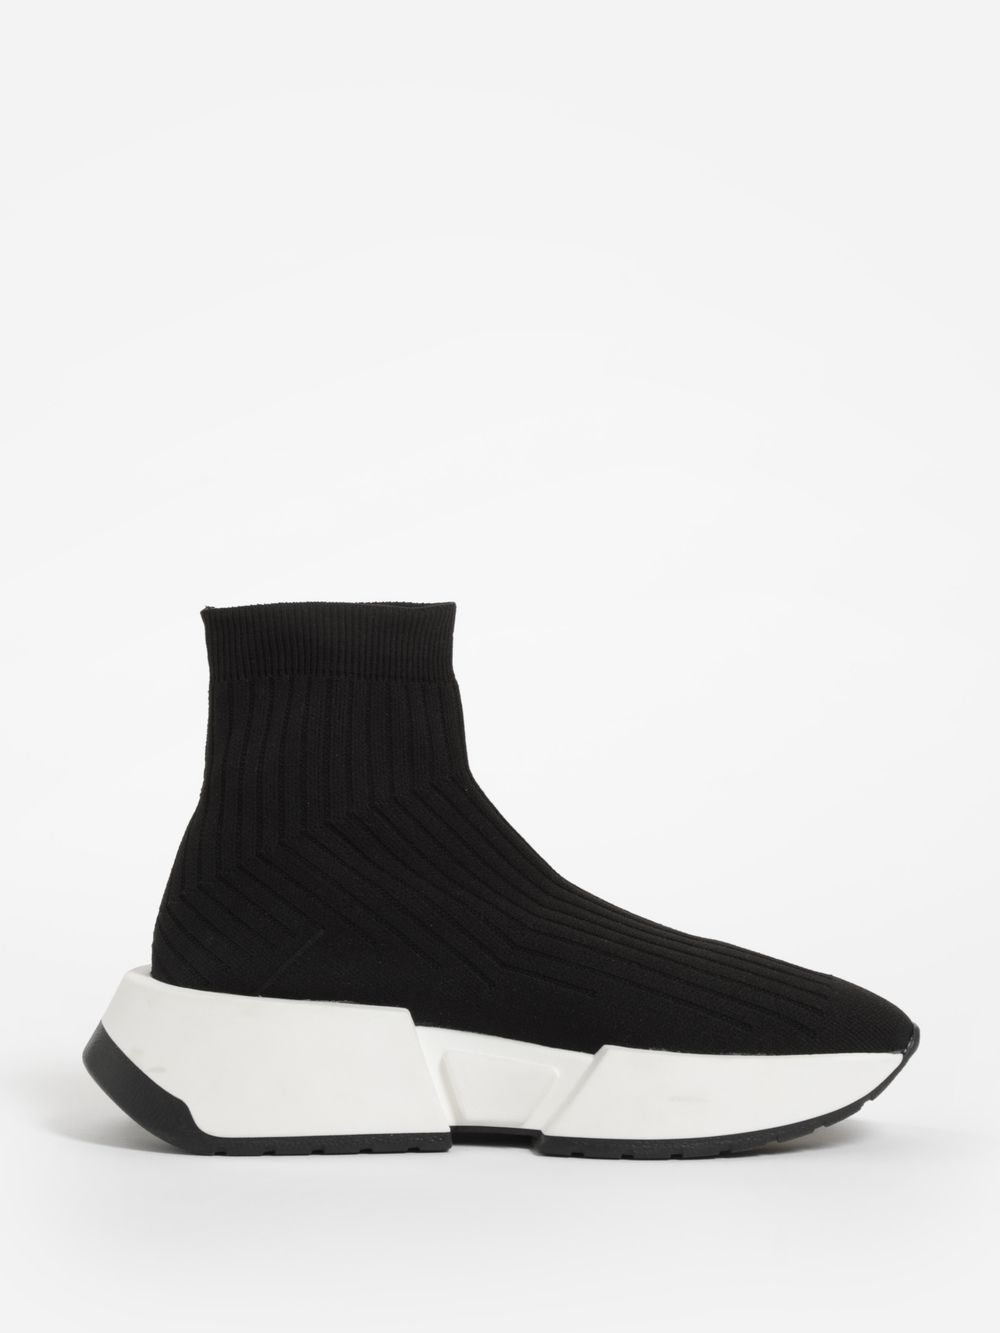 6c652307fc94 Maison Margiela MM6 Sneakers S40WS0066S23235 900 in 2019